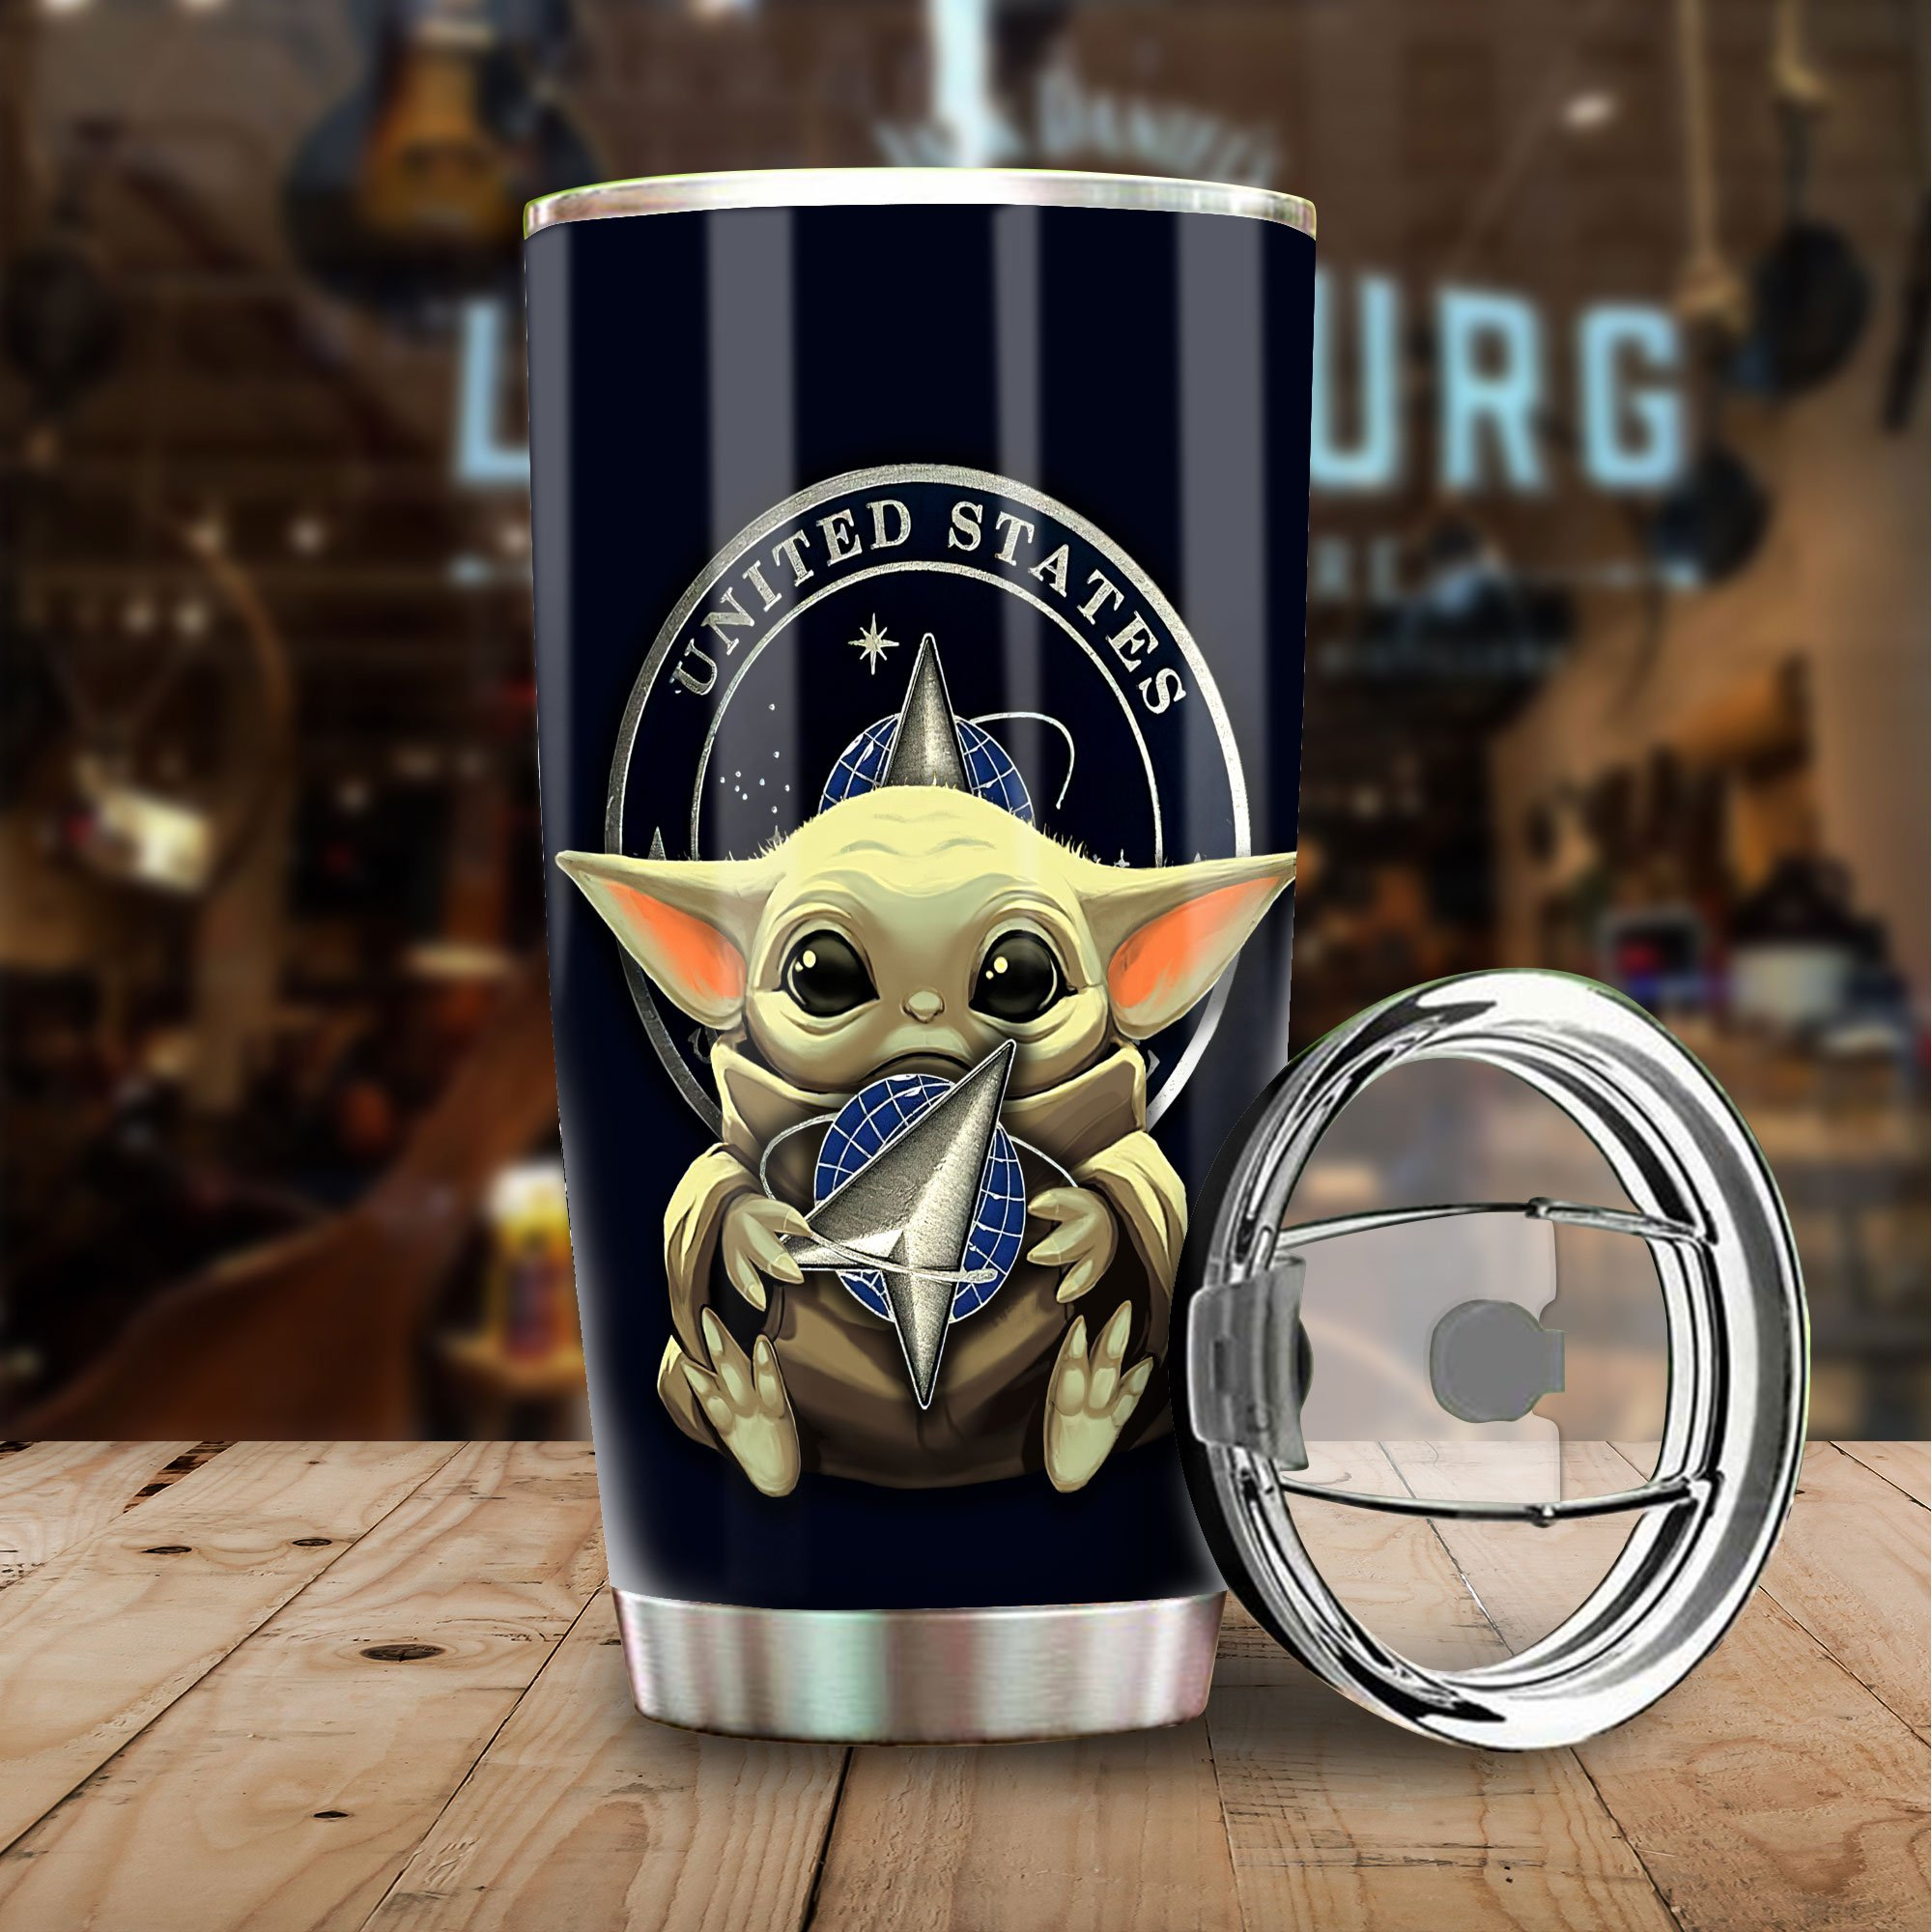 89fashion Ussf Tumbler Cup Baby Yoda Us Space Force Coffee Cup Gift Size 20 Oz Drinkwater & Tumbler